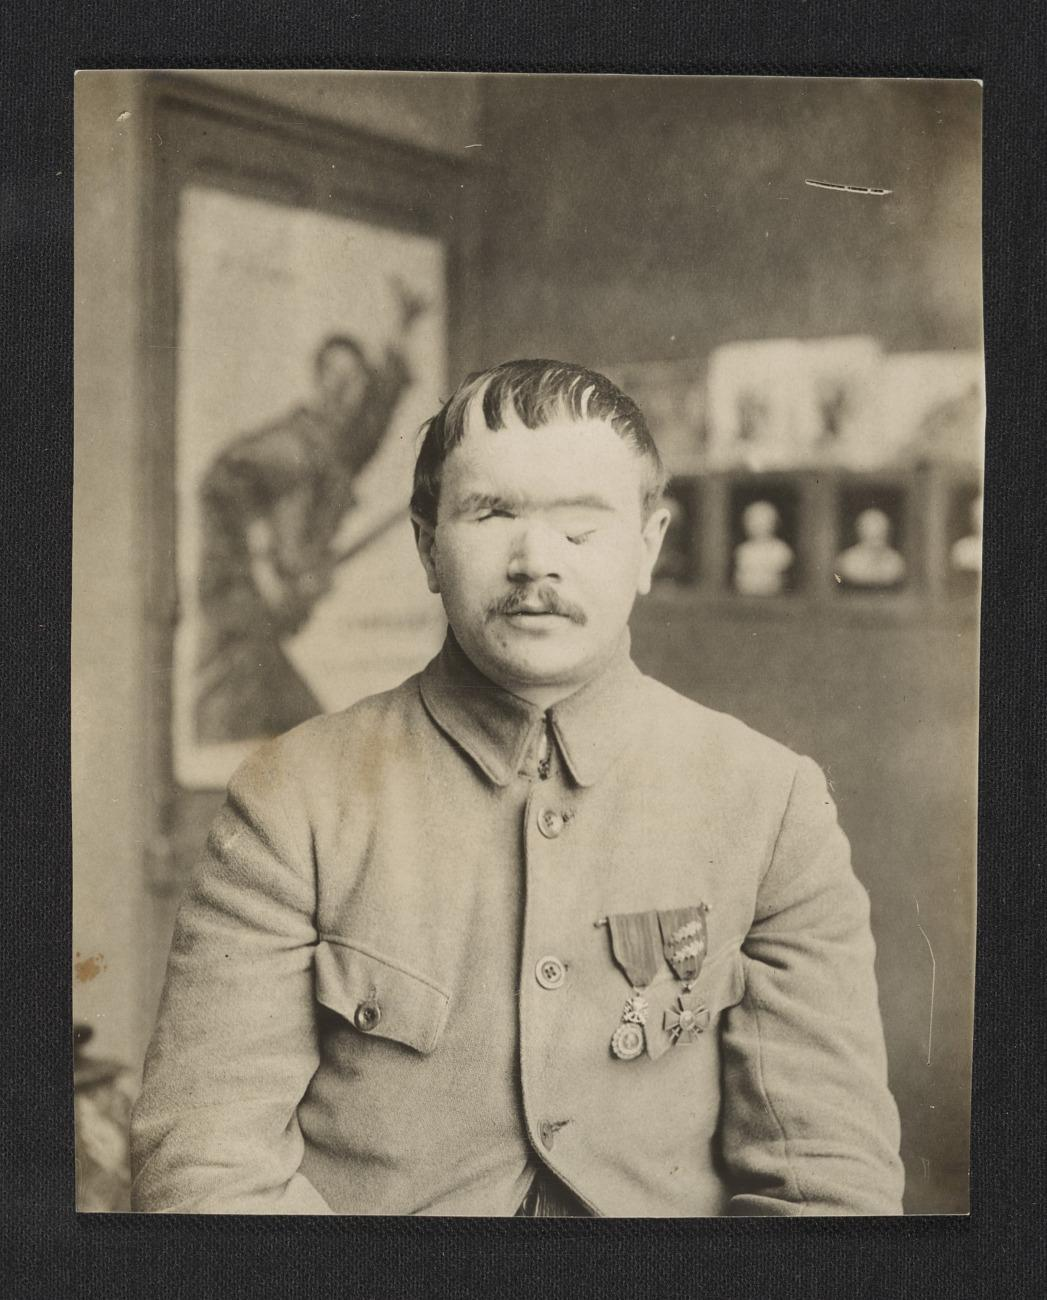 American Red Cross, A World War I soldier before facial reconstruction